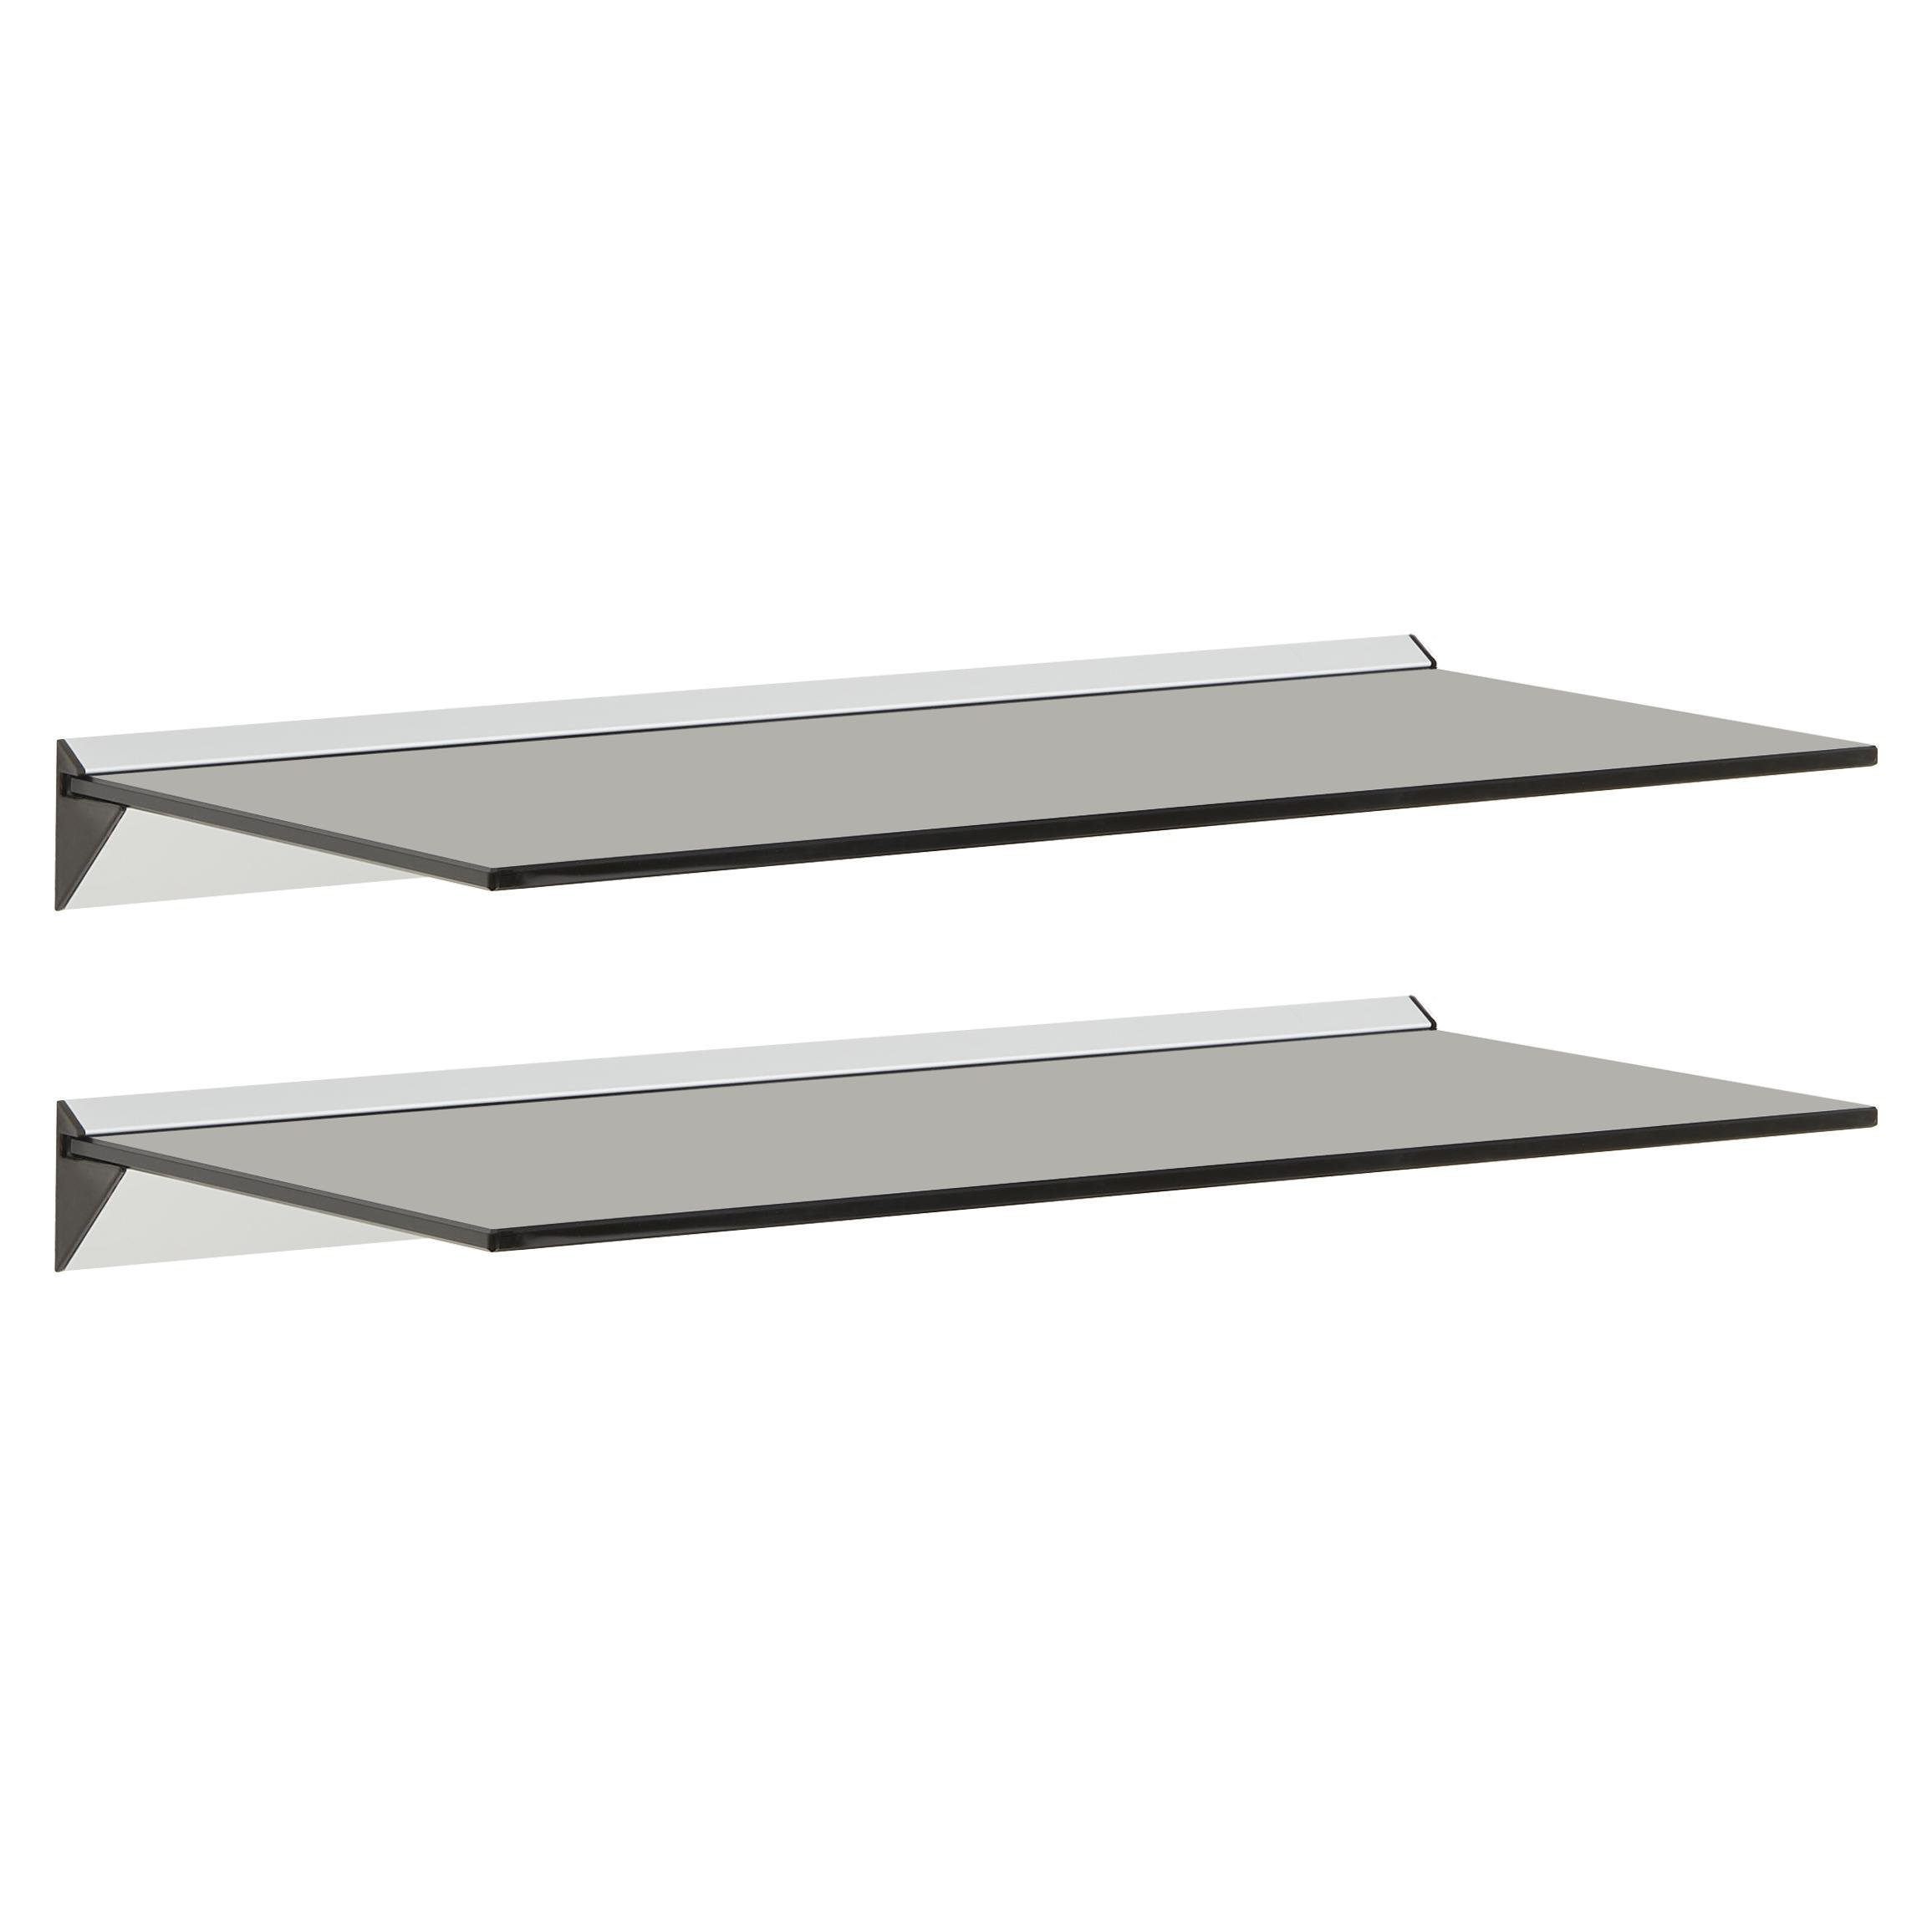 image-Hartleys 60x26cm Black Floating Glass Wall Shelves - Pair